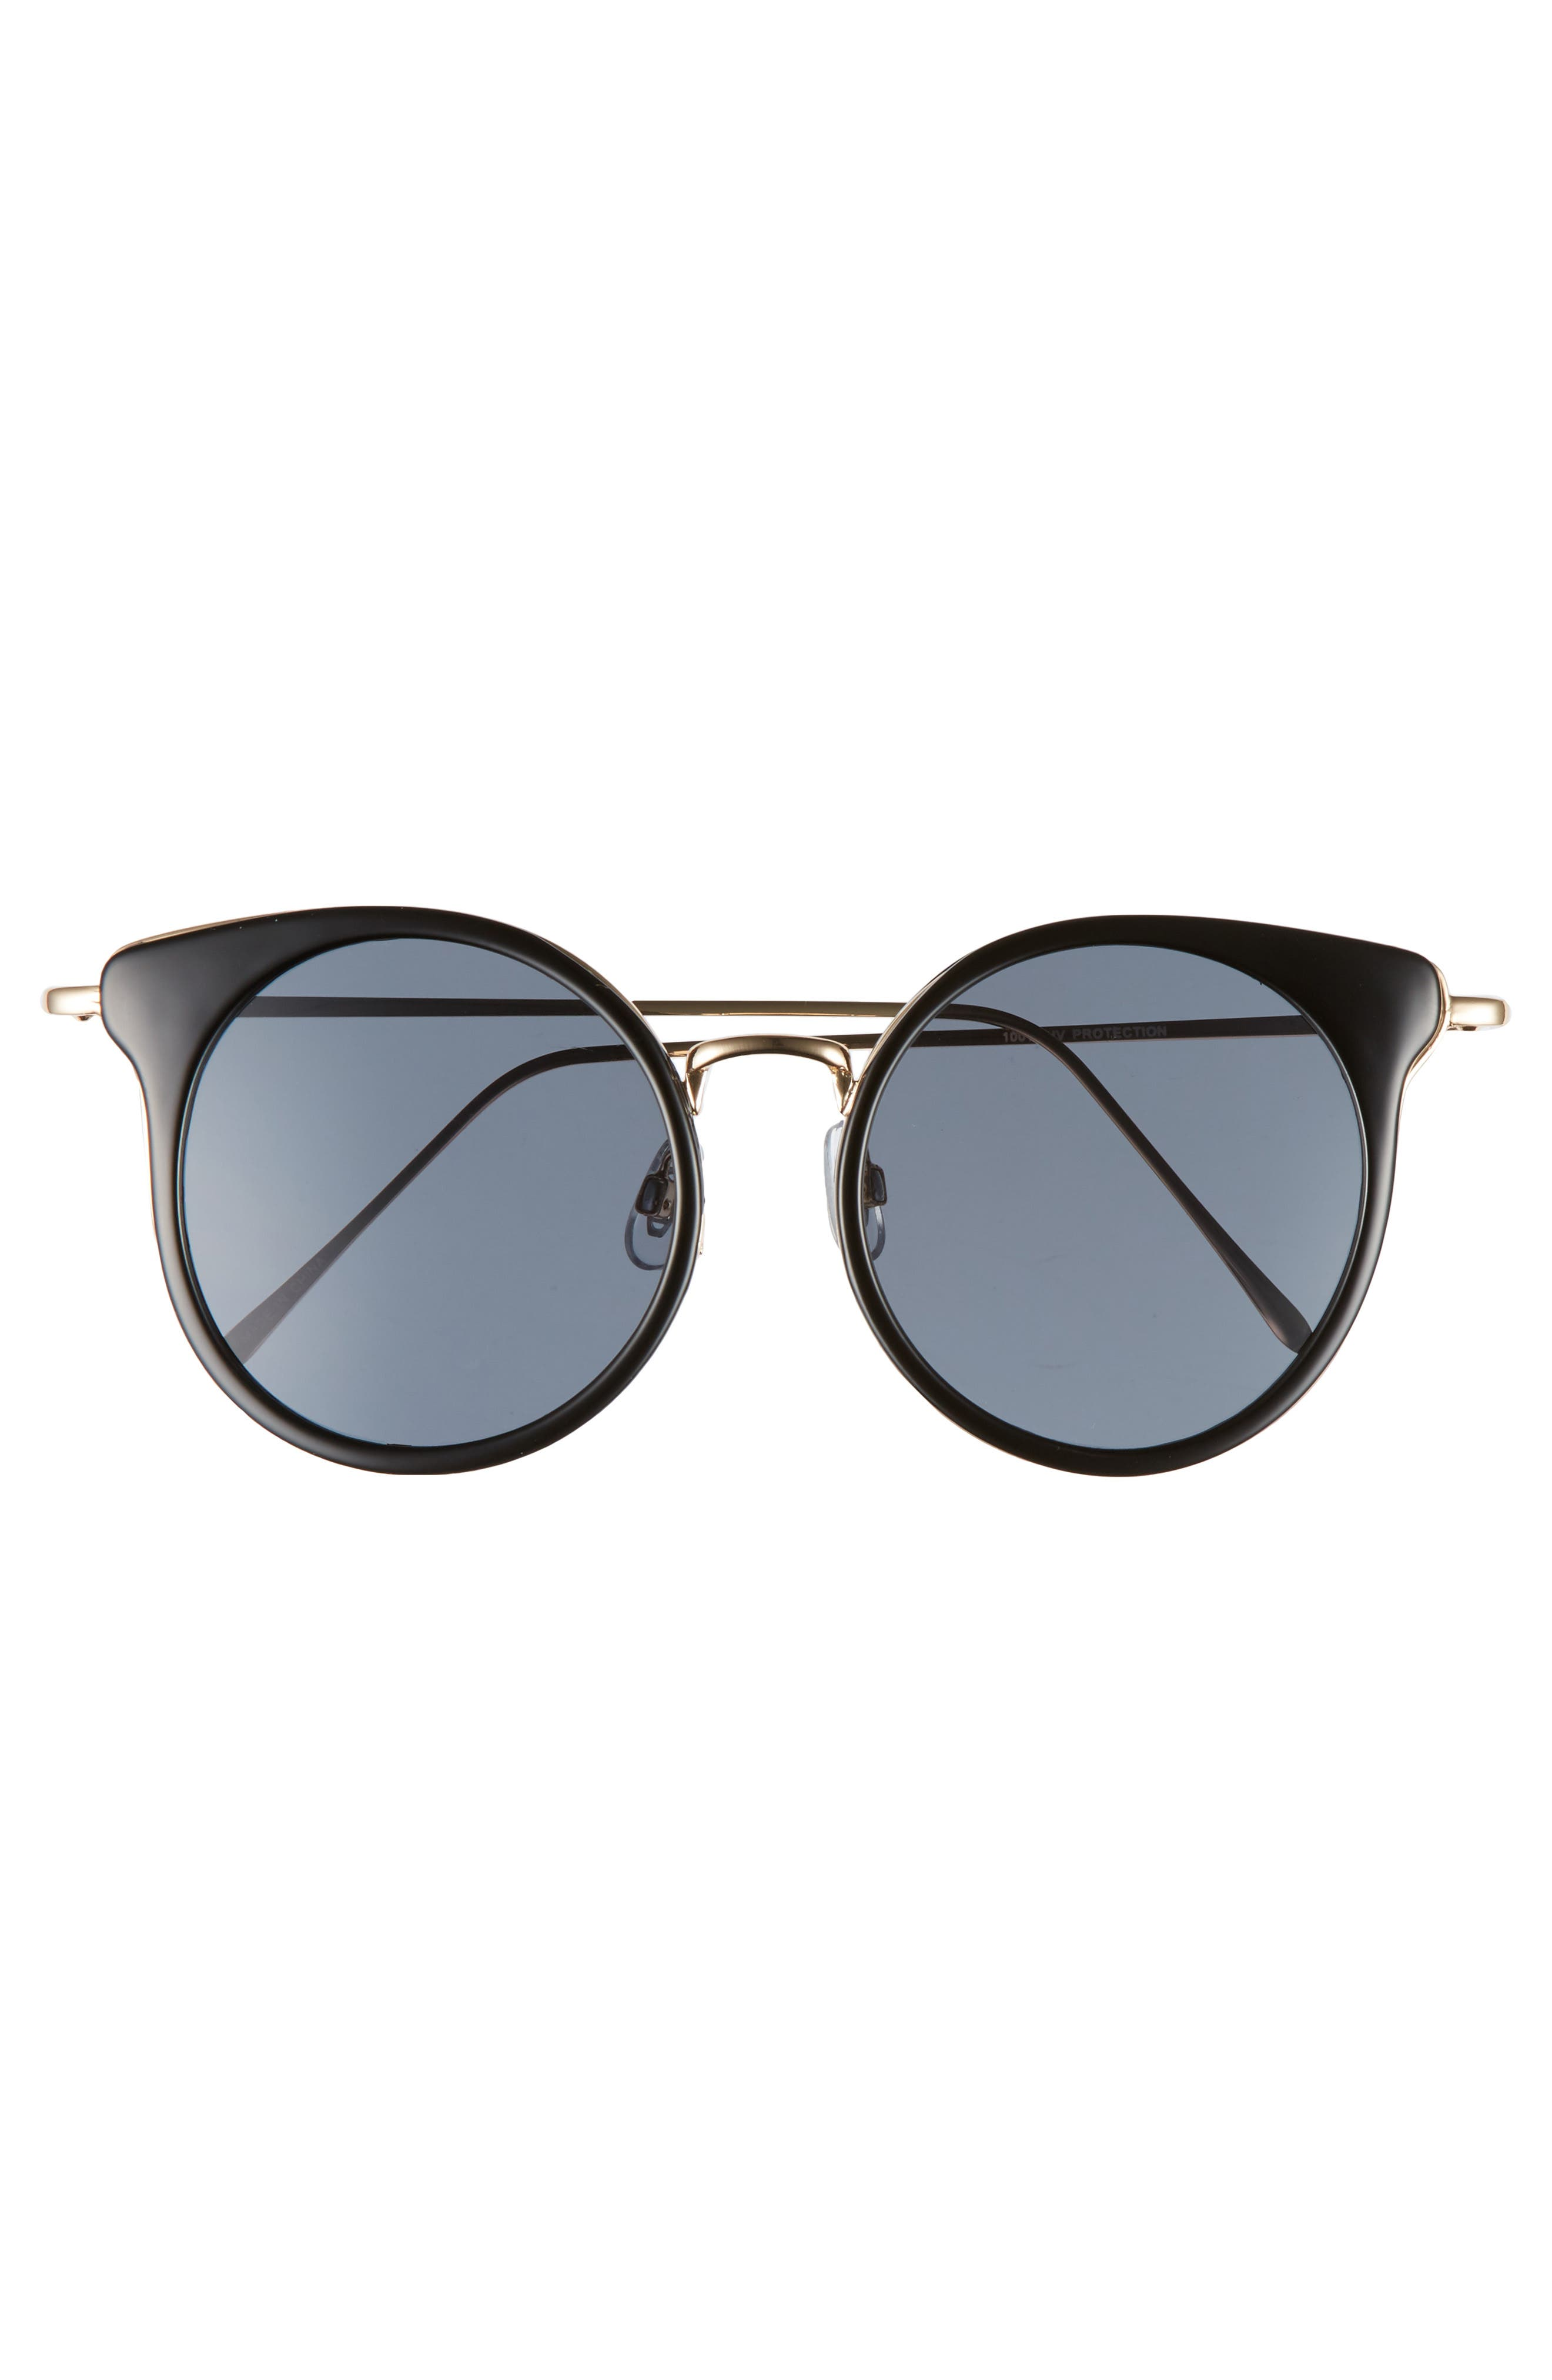 Round Wing Sunglasses,                             Alternate thumbnail 3, color,                             710